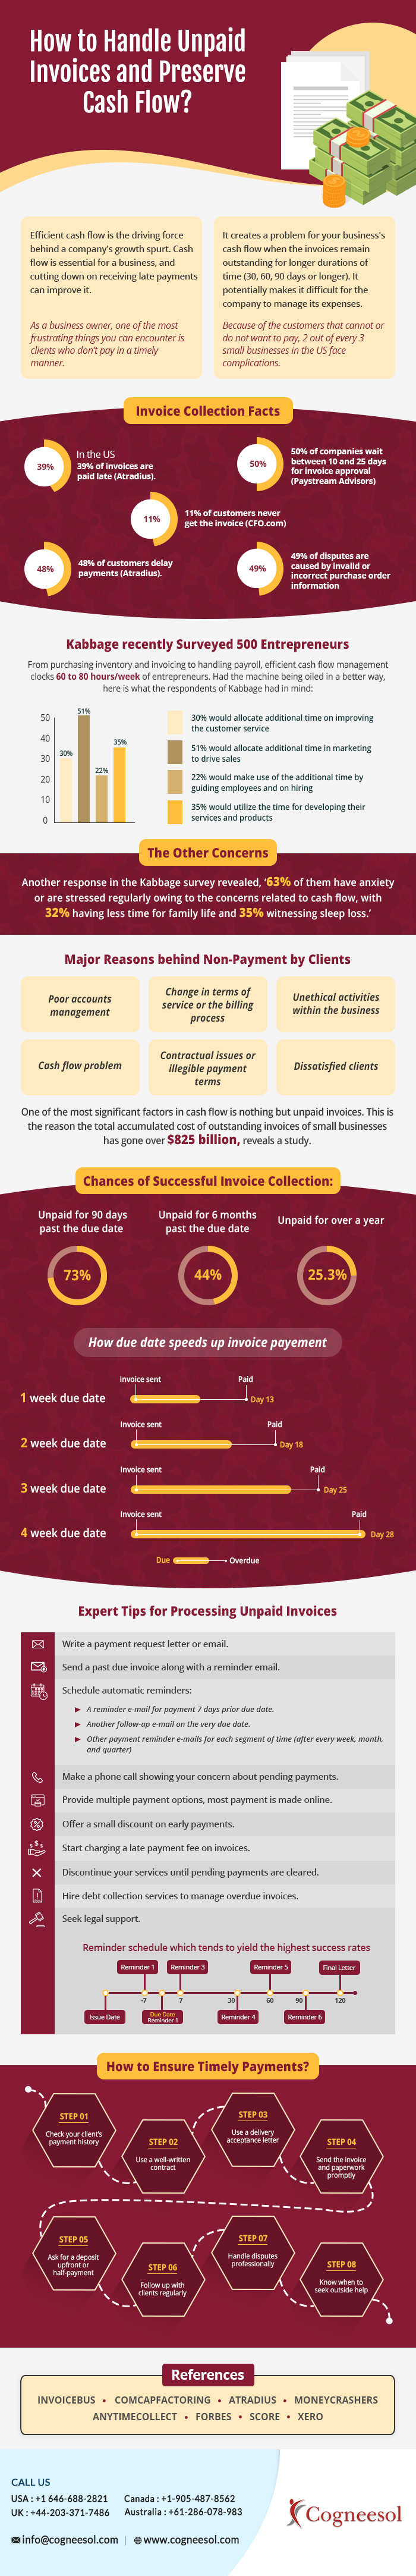 How-to-Handle-Unpaid-Invoices-and-Preserve-Cash-Flow-infographic-plaza